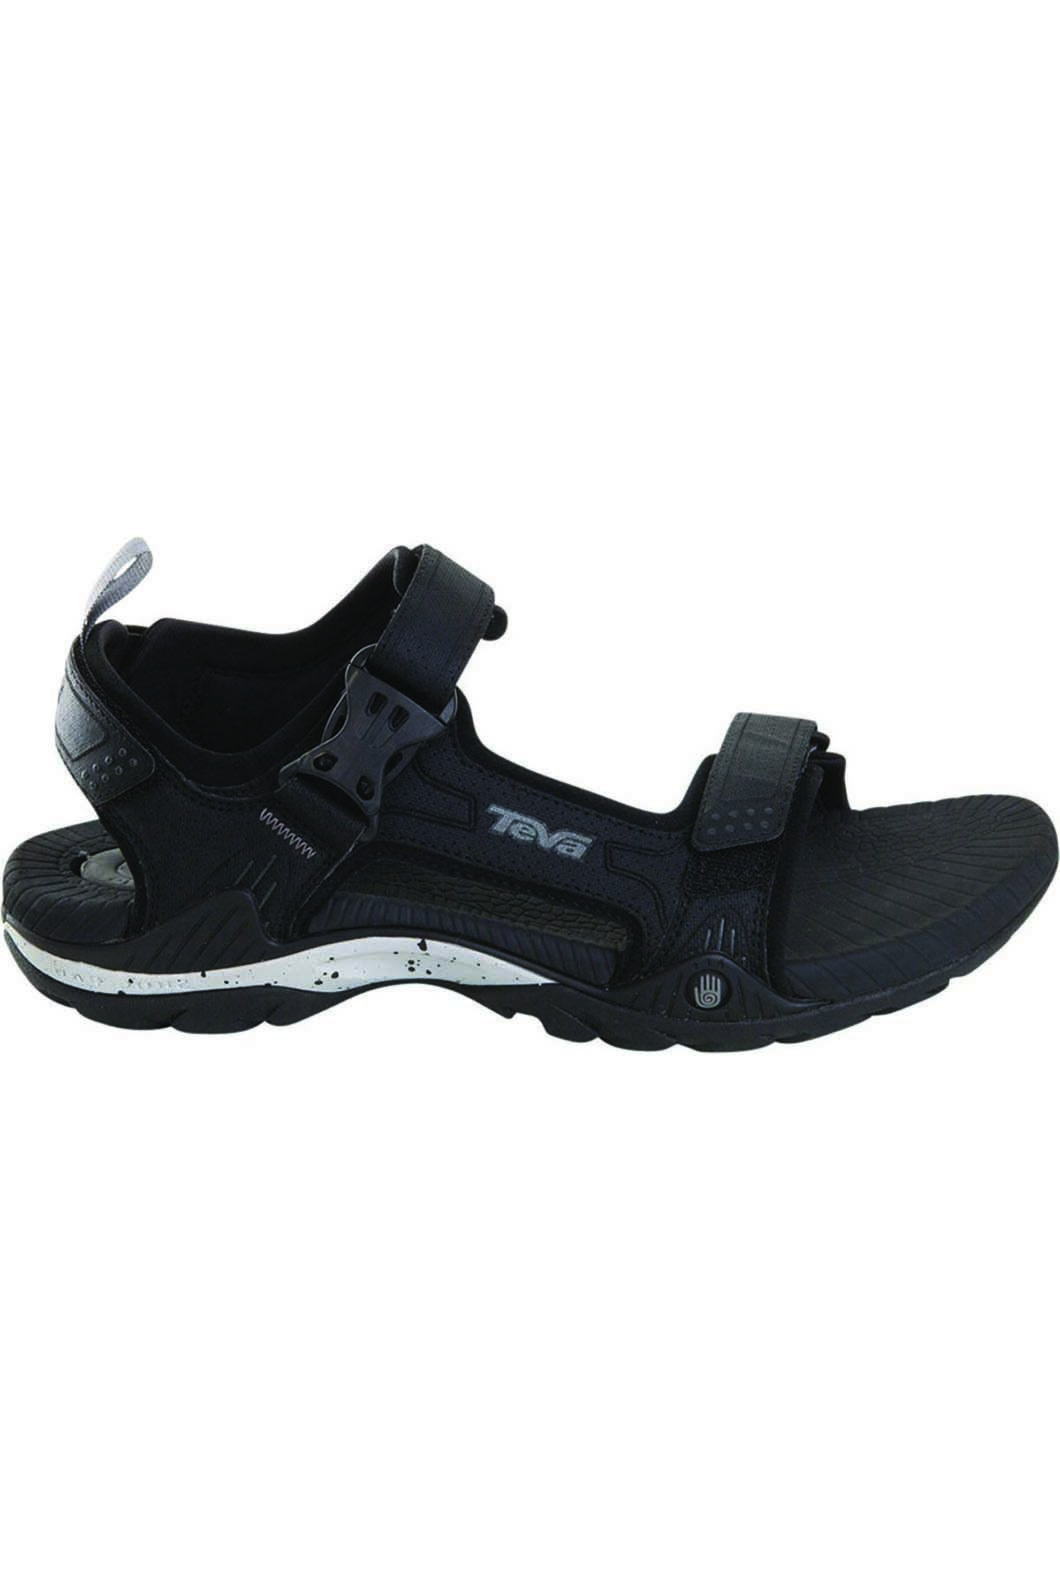 Teva Men's Toachi Sandal, Black, hi-res